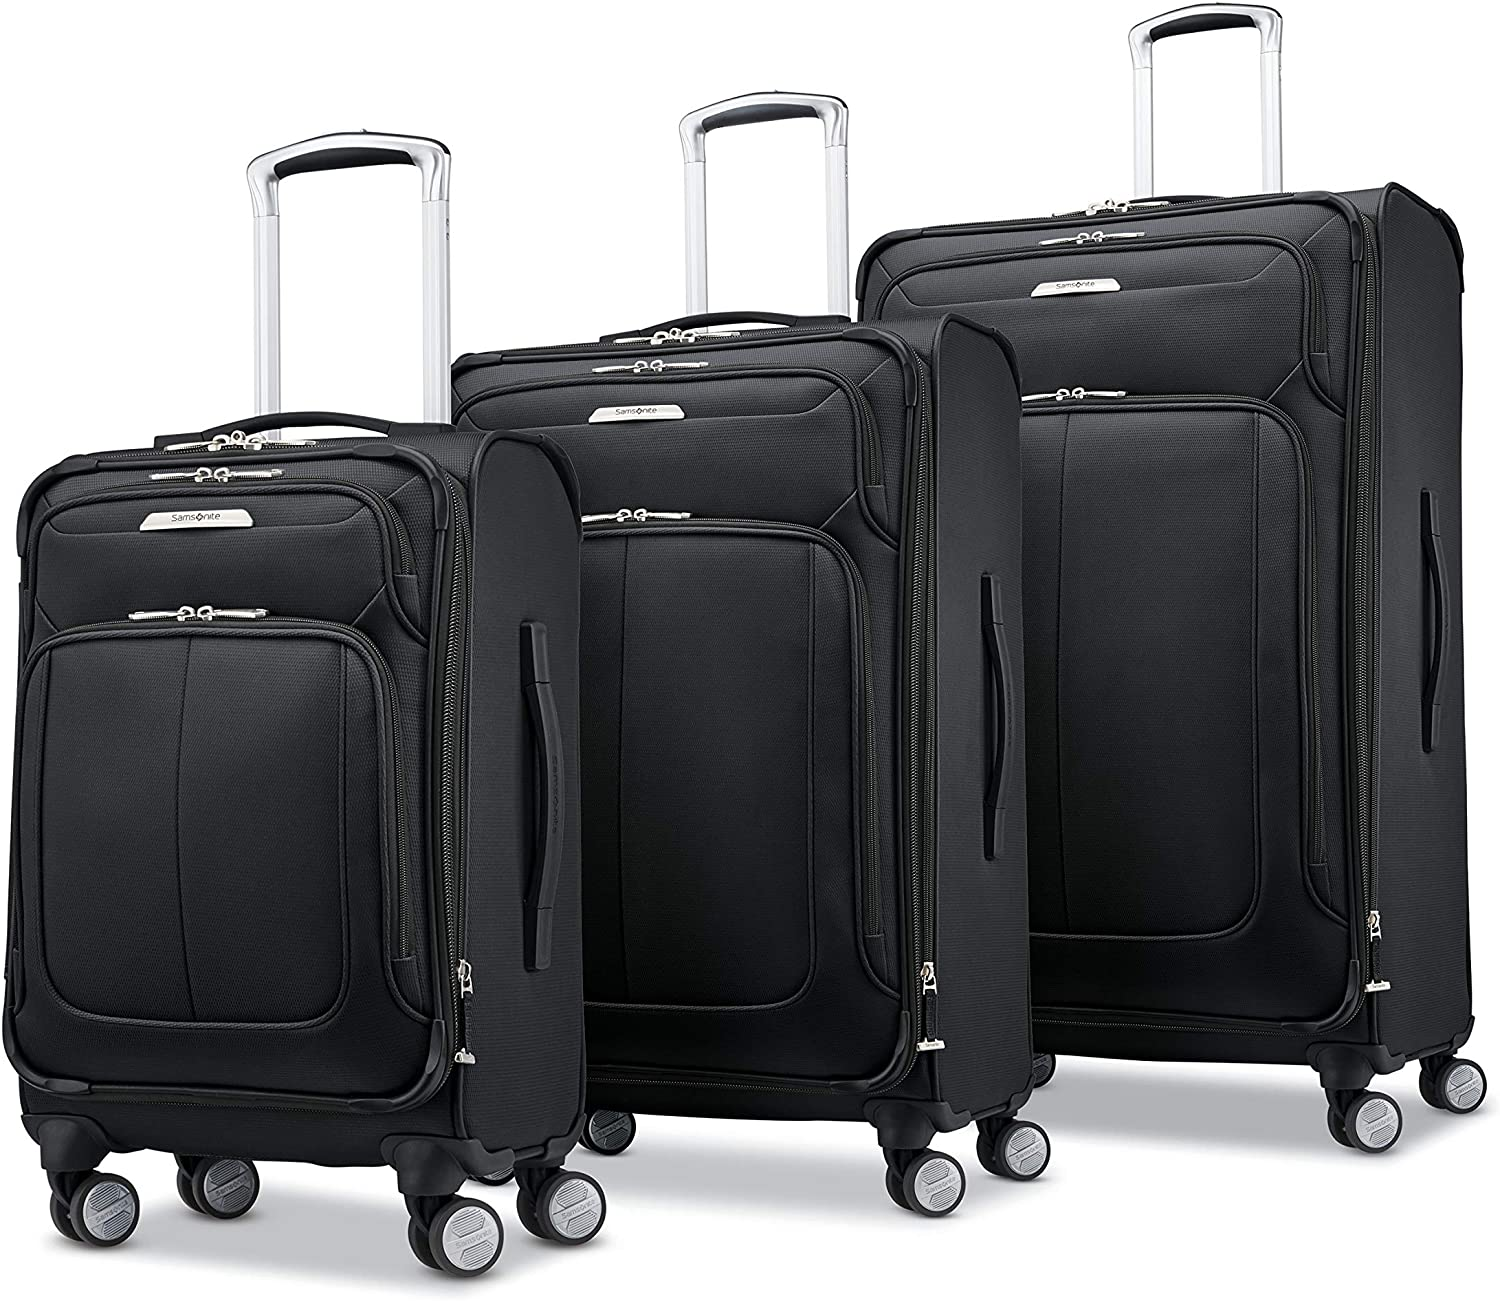 Samsonite Solyte DLX Softside Expandable Luggage with Spinner Wheels, Midnight Black, 3-Piece Set (20/25/29)